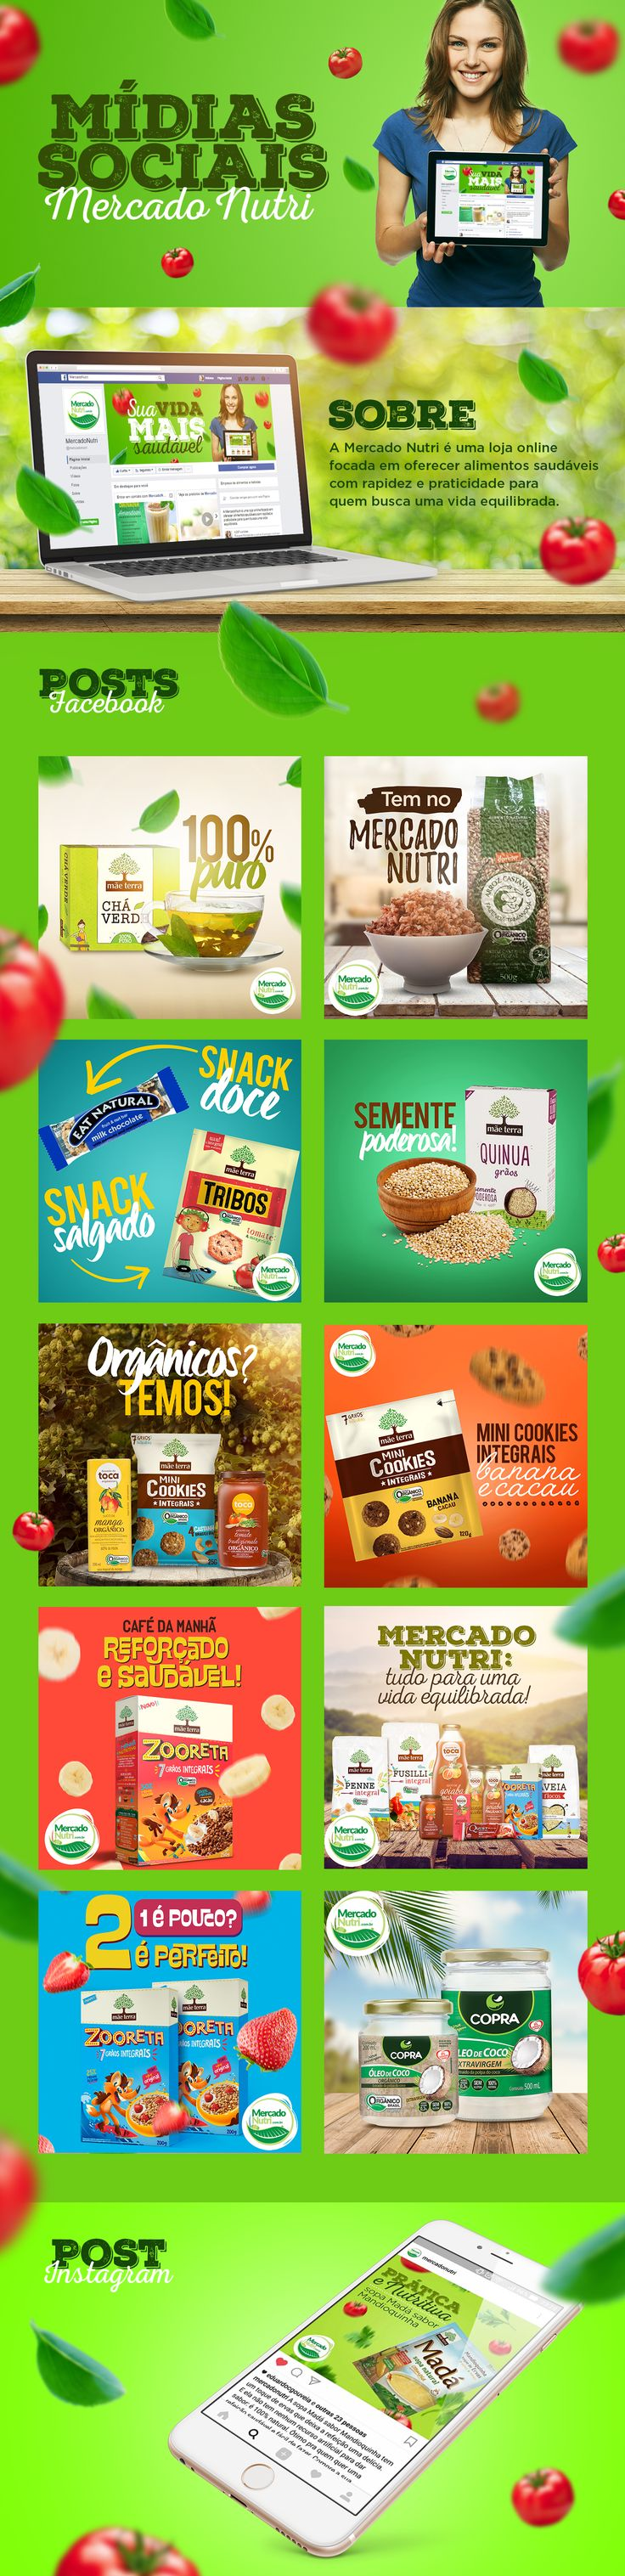 Mercado Nutri │ Mídias Sociais on Behance